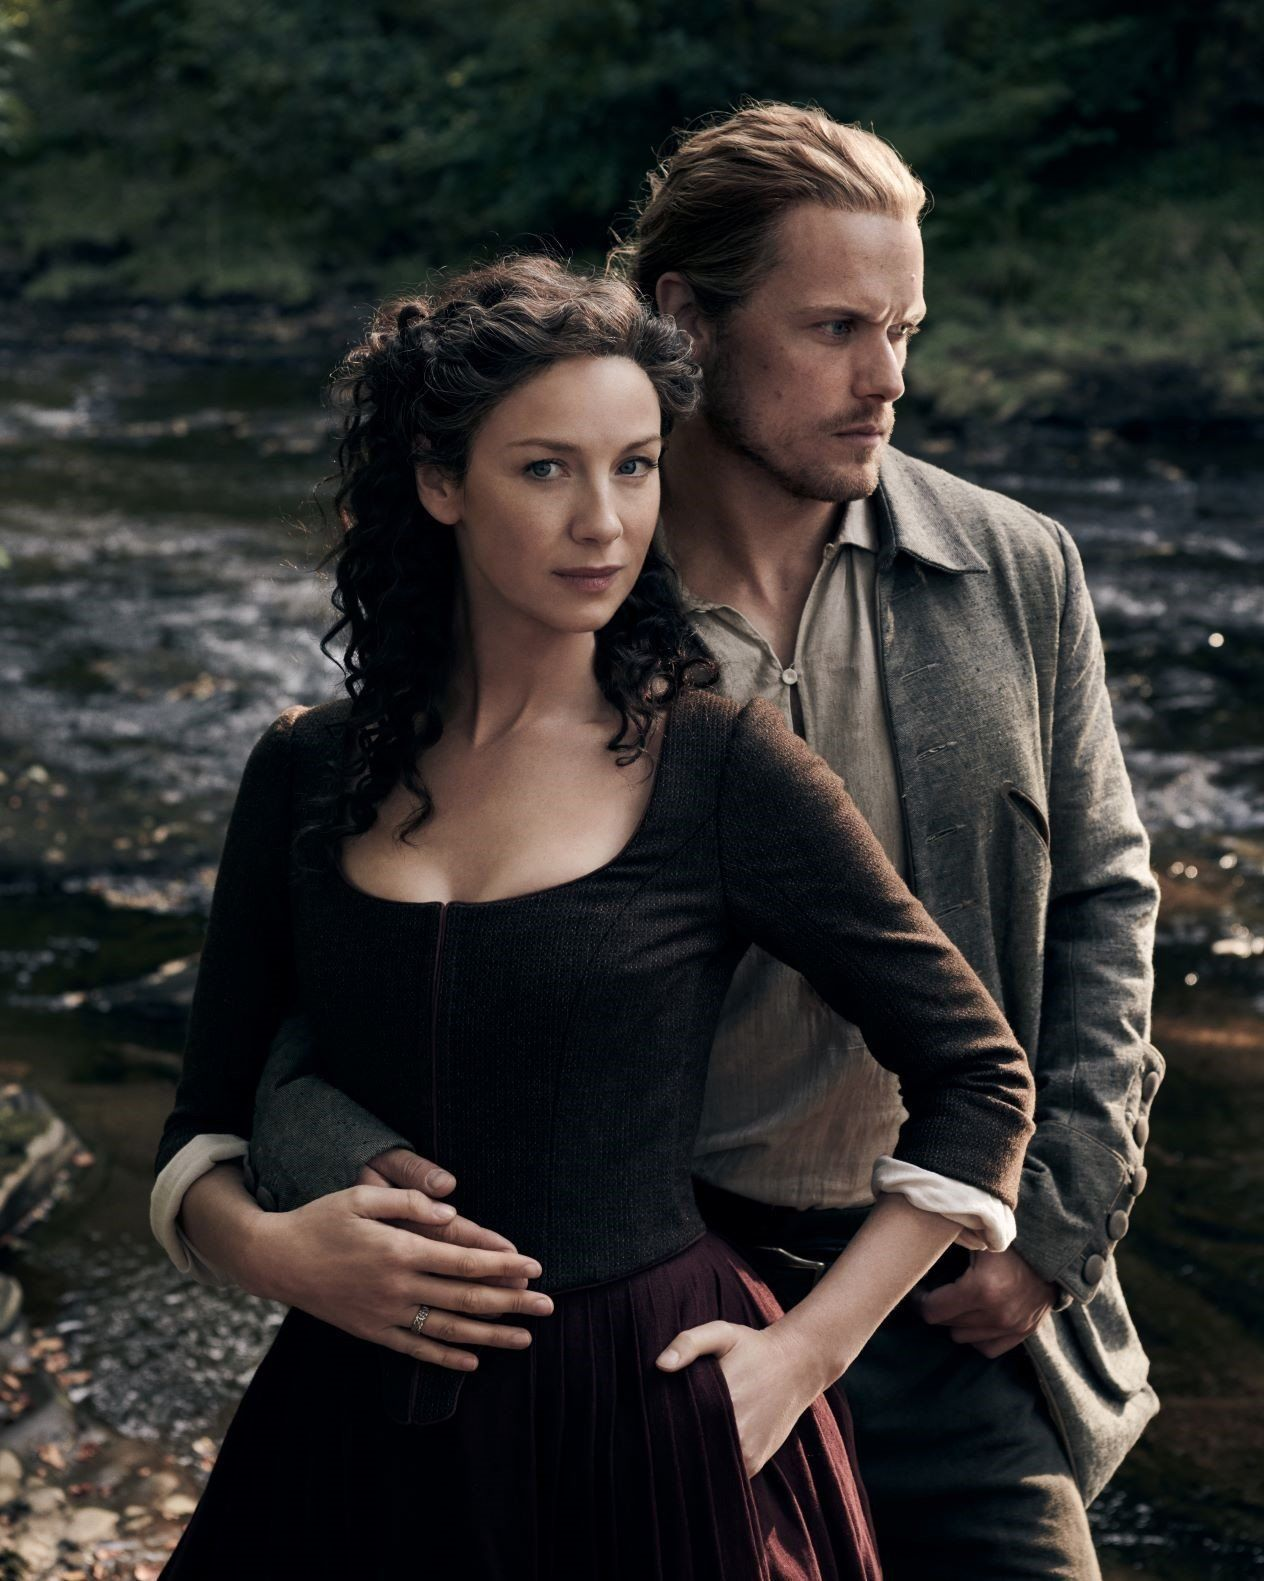 Outlander Cast Members Sam Heughan And Caitriona Balfe On The Passion In Season 5 In 2020 Sam Heughan Outlander Wedding Outlander Casting